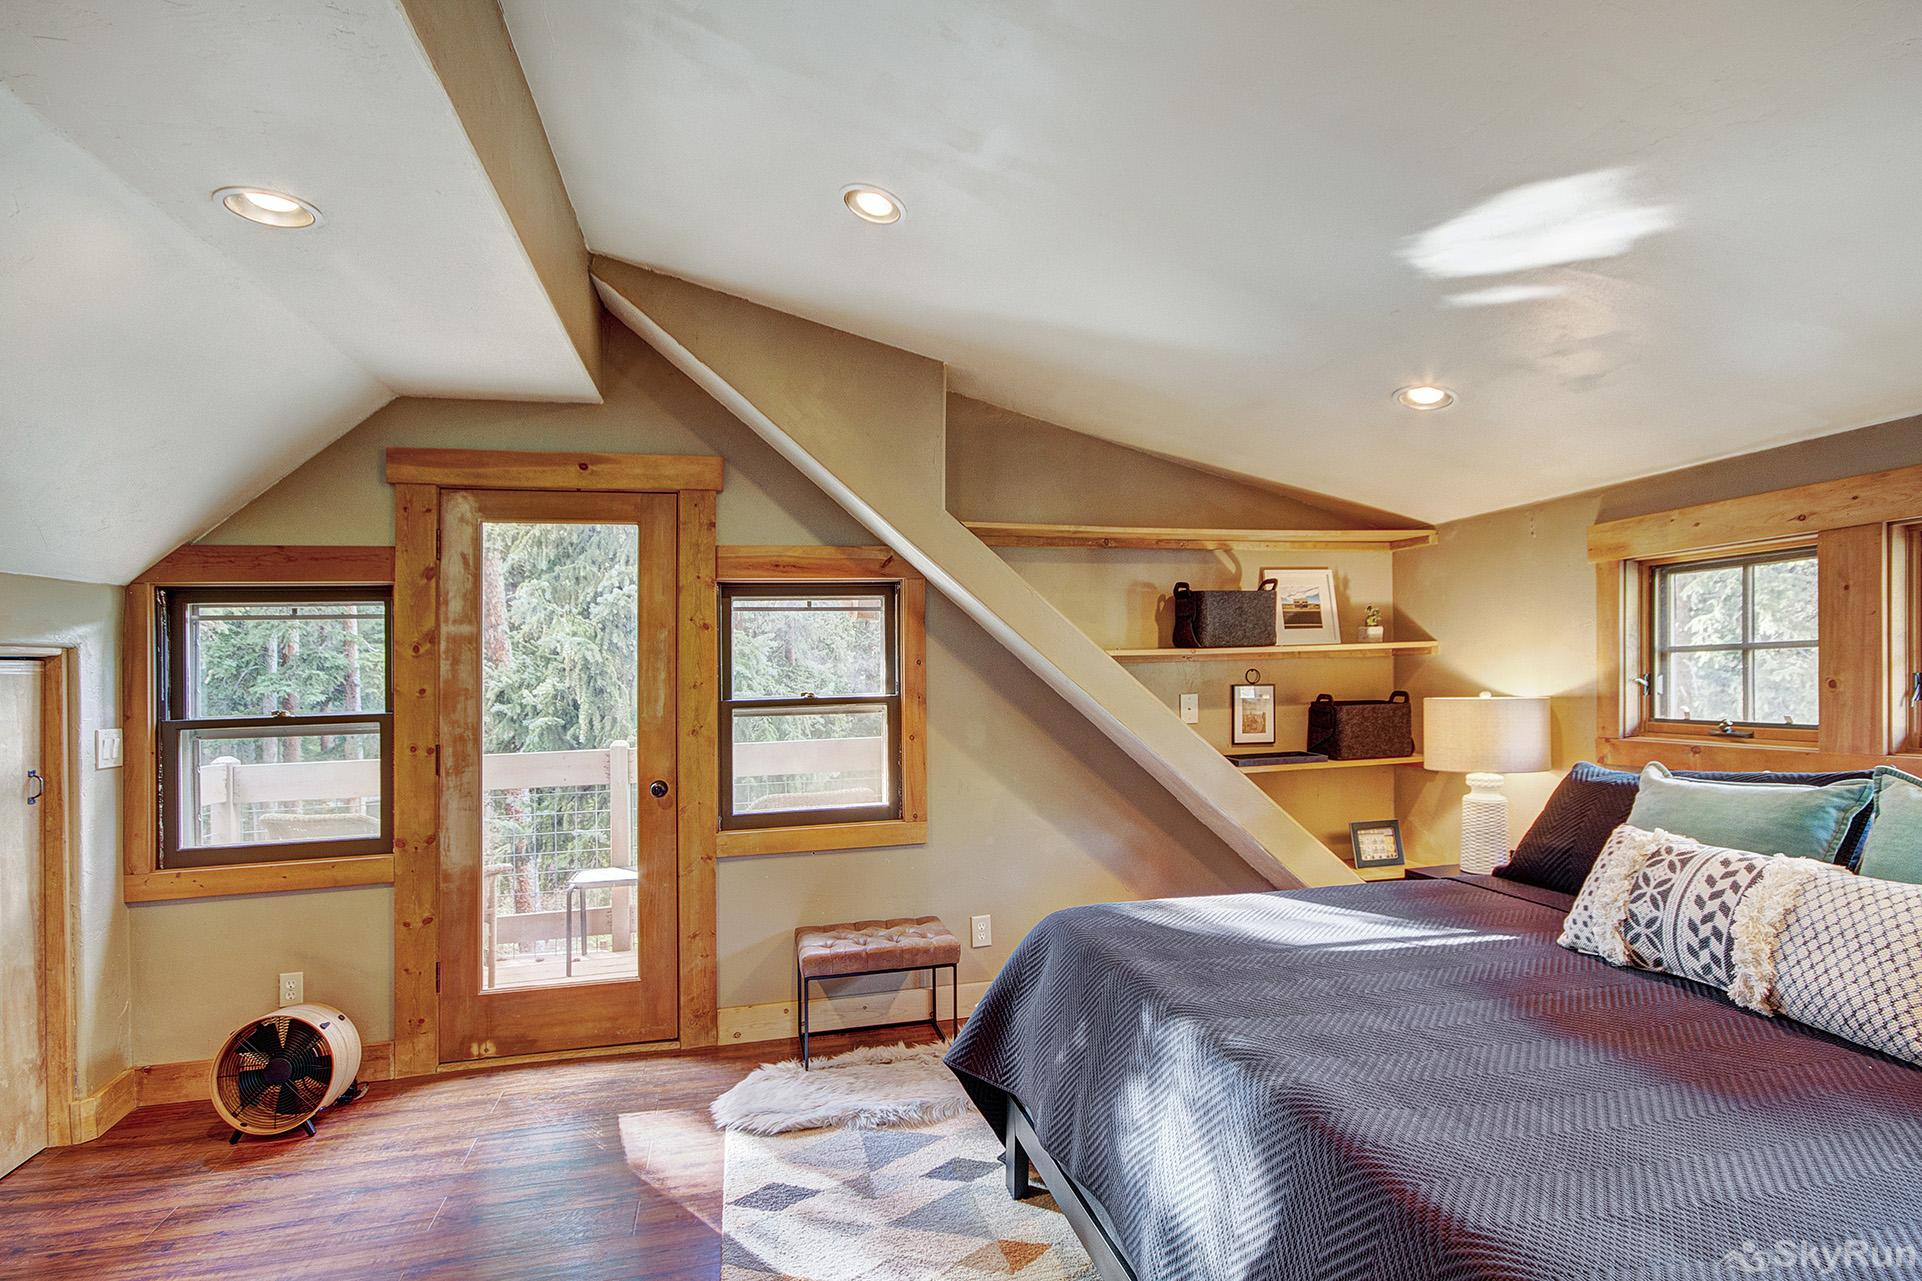 Black Bear Chalet King master bedroom with ensuite bath, private balcony